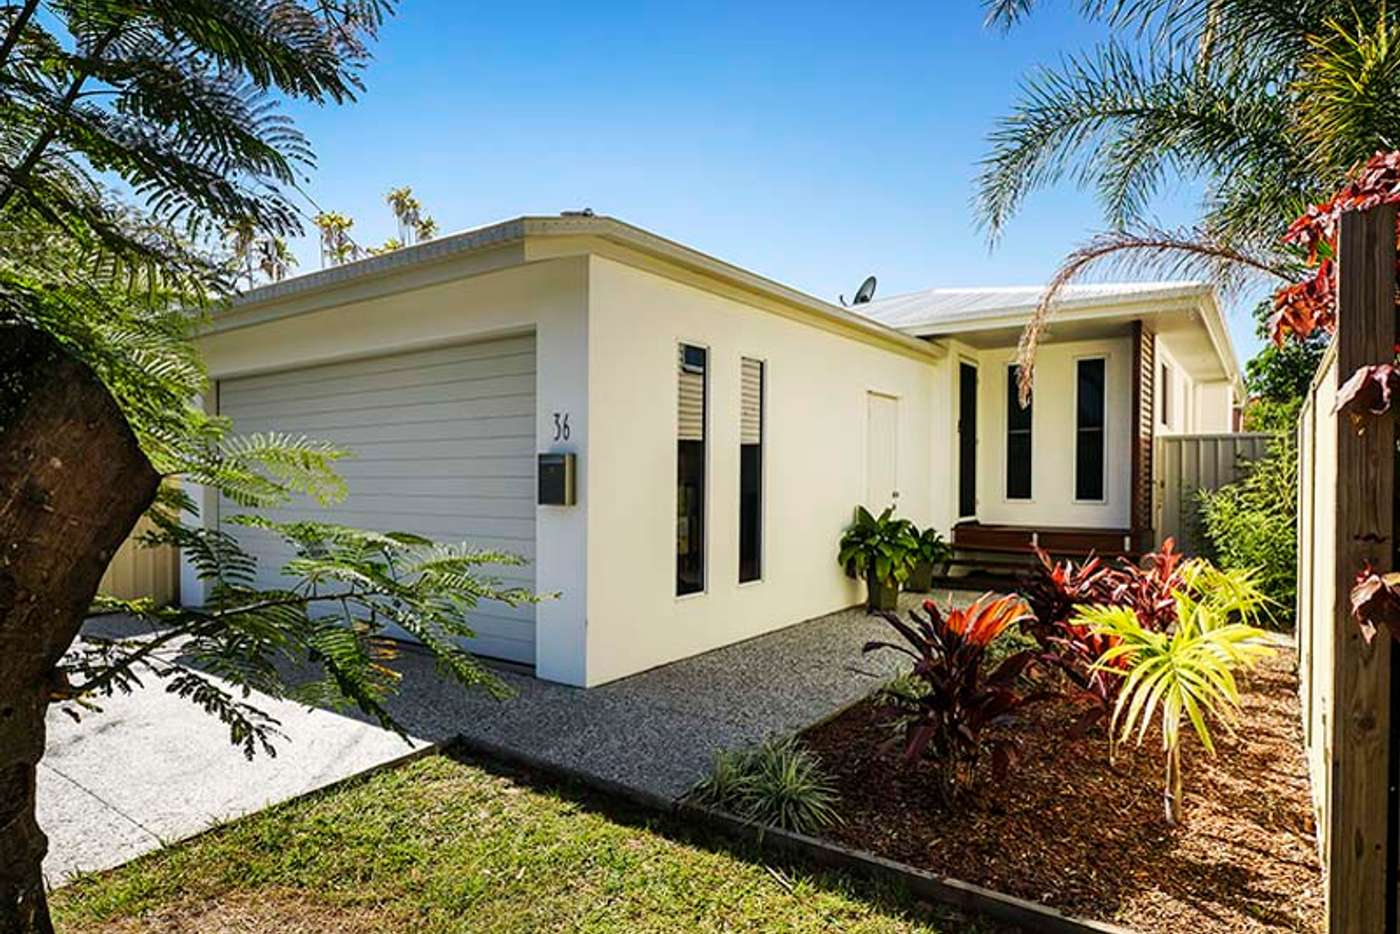 Main view of Homely house listing, 36 Livermore Street, Redcliffe QLD 4020